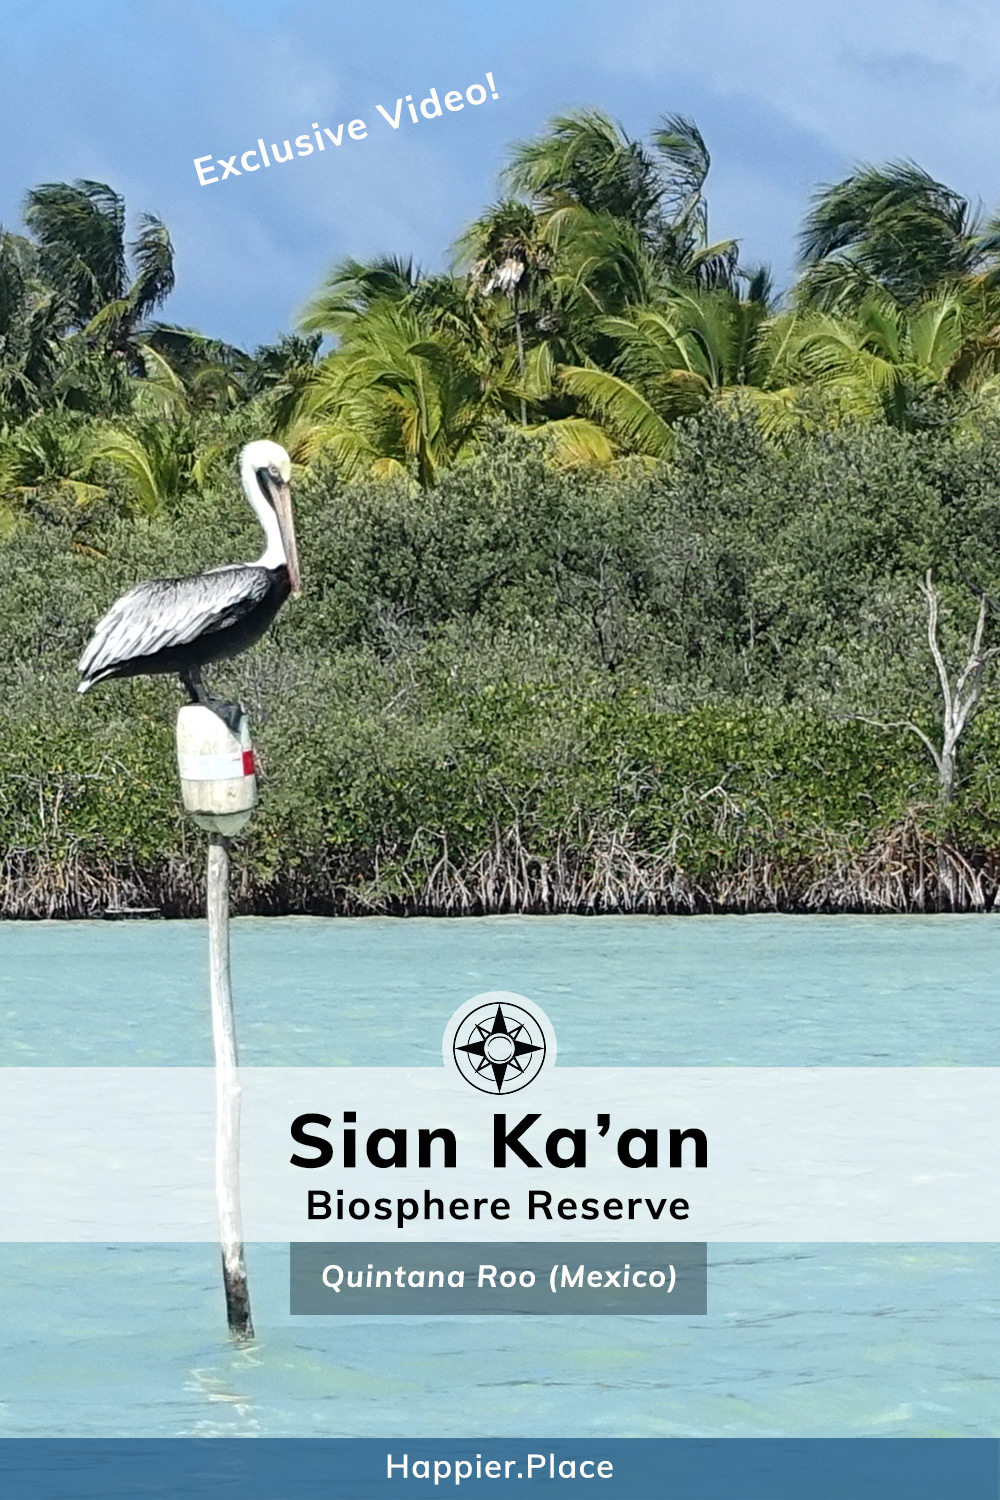 Sian Ka'an Biosphere Reserve, Tulum, Mexico, Quintana Roo, Yucatan Peninsula, Happier Place, pelican, clear water, jungle, video